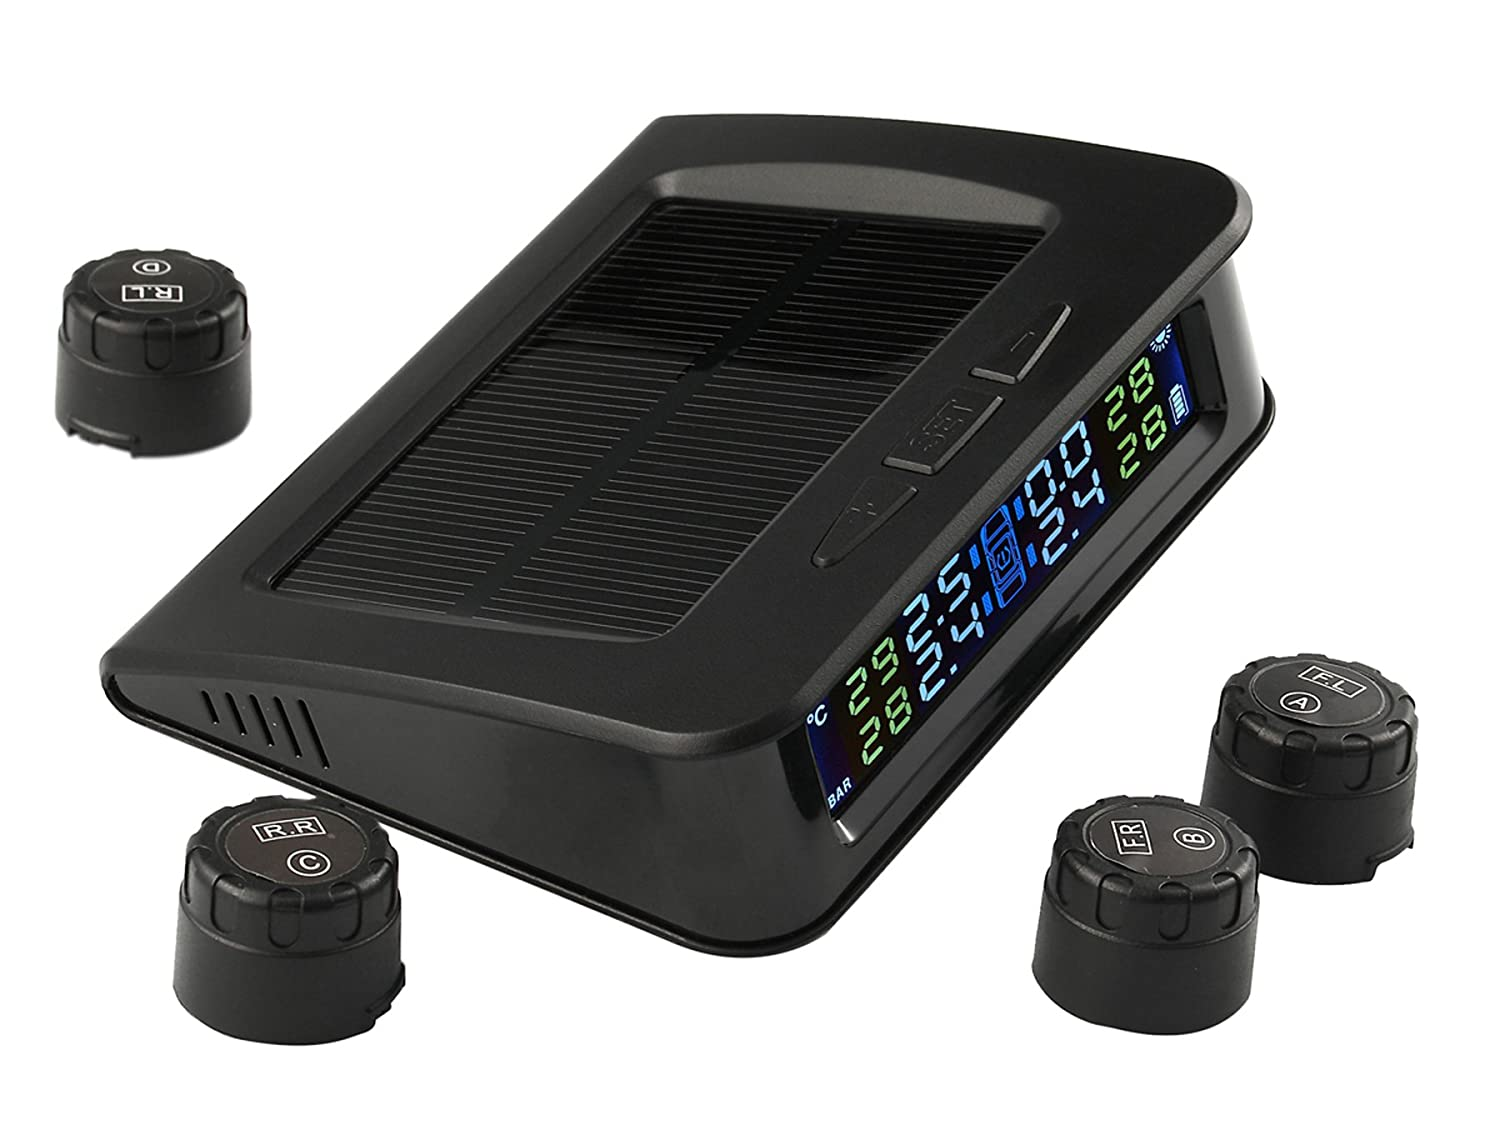 TPMS Solar Power Universal Wireless Tire Pressure Monitoring System with 4 External Sensors to Monitor and Display the Pressure and Temperature of 4 Tires in Real-time Beipuit